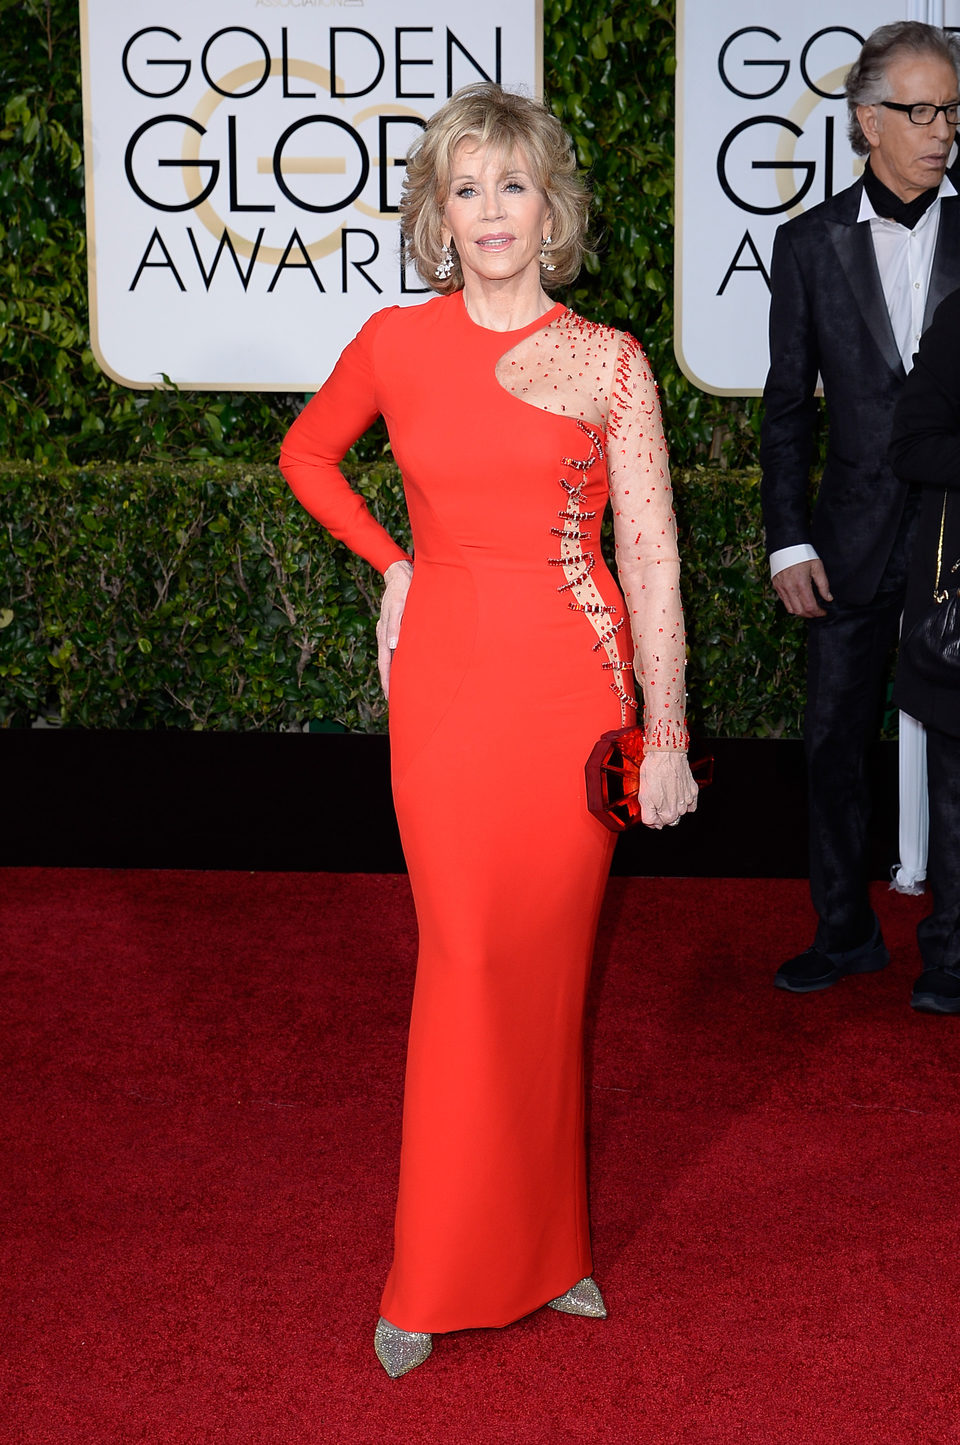 Jane Fonda at the Golden Globes 2015 red carpet